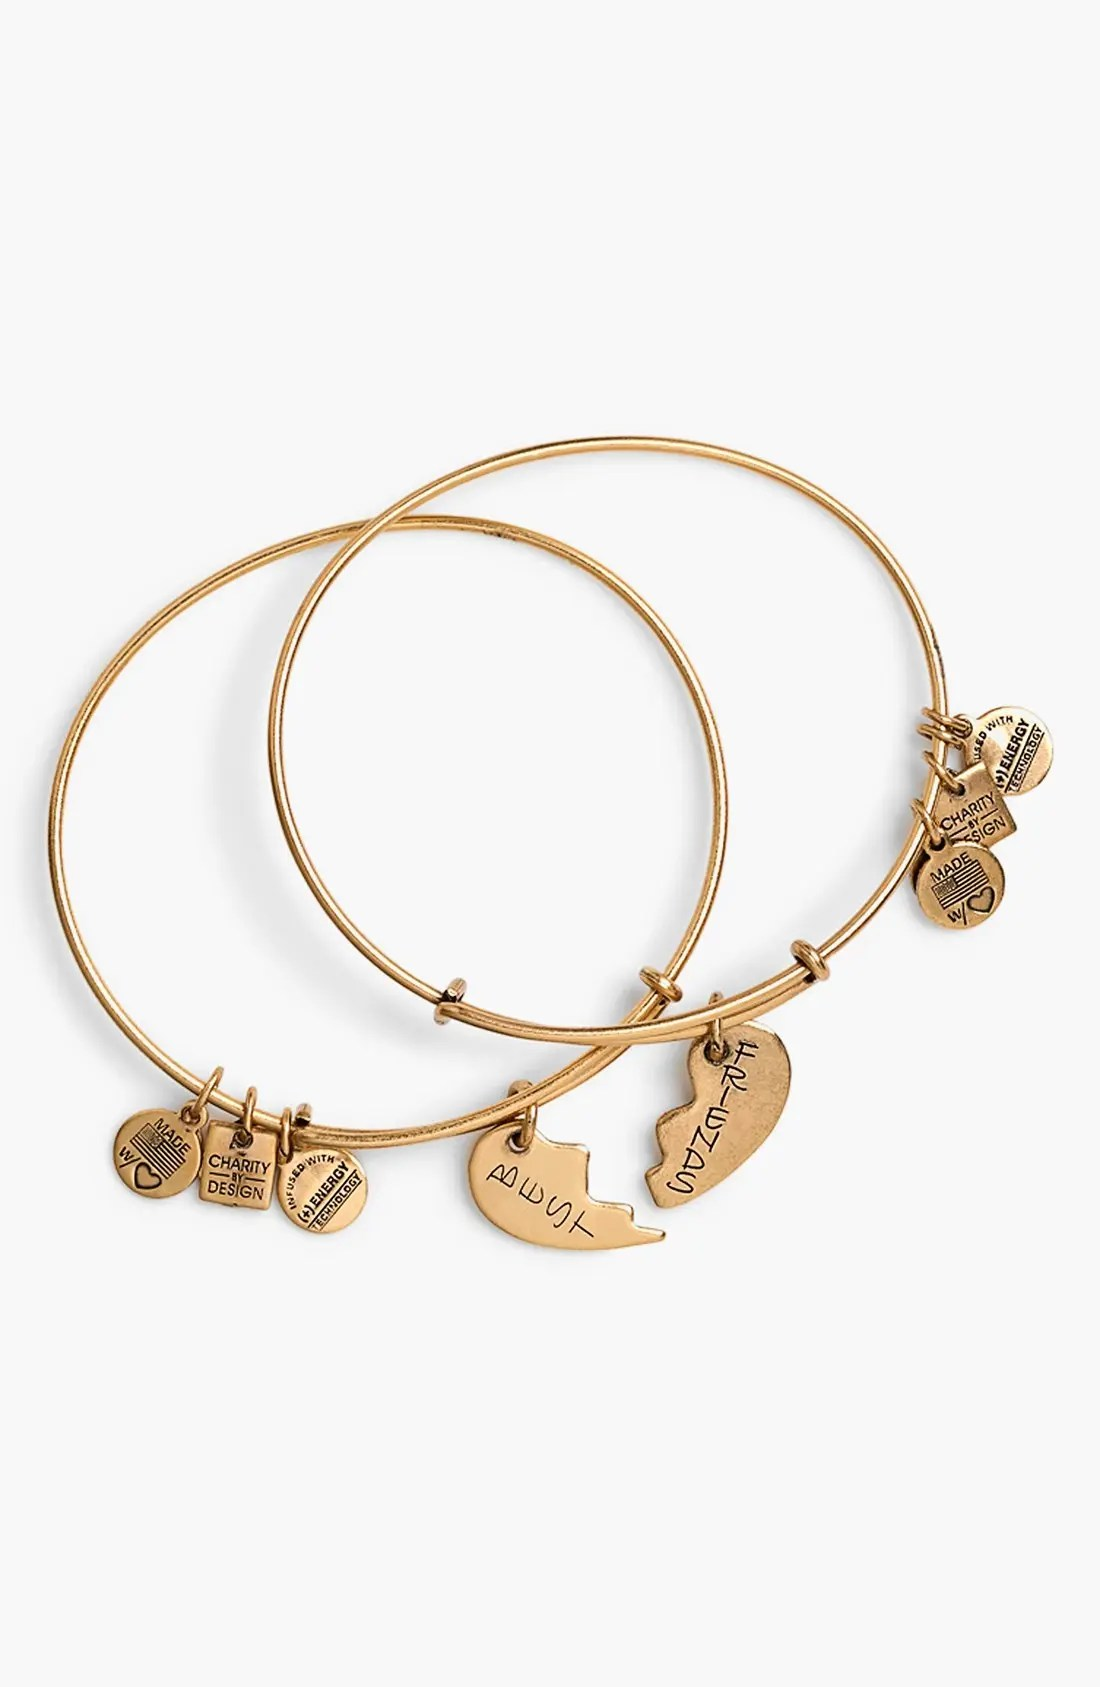 Main Image - Alex and Ani 'Charity by Design - Best Friends' Adjustable Wire Bangles (Set of 2)